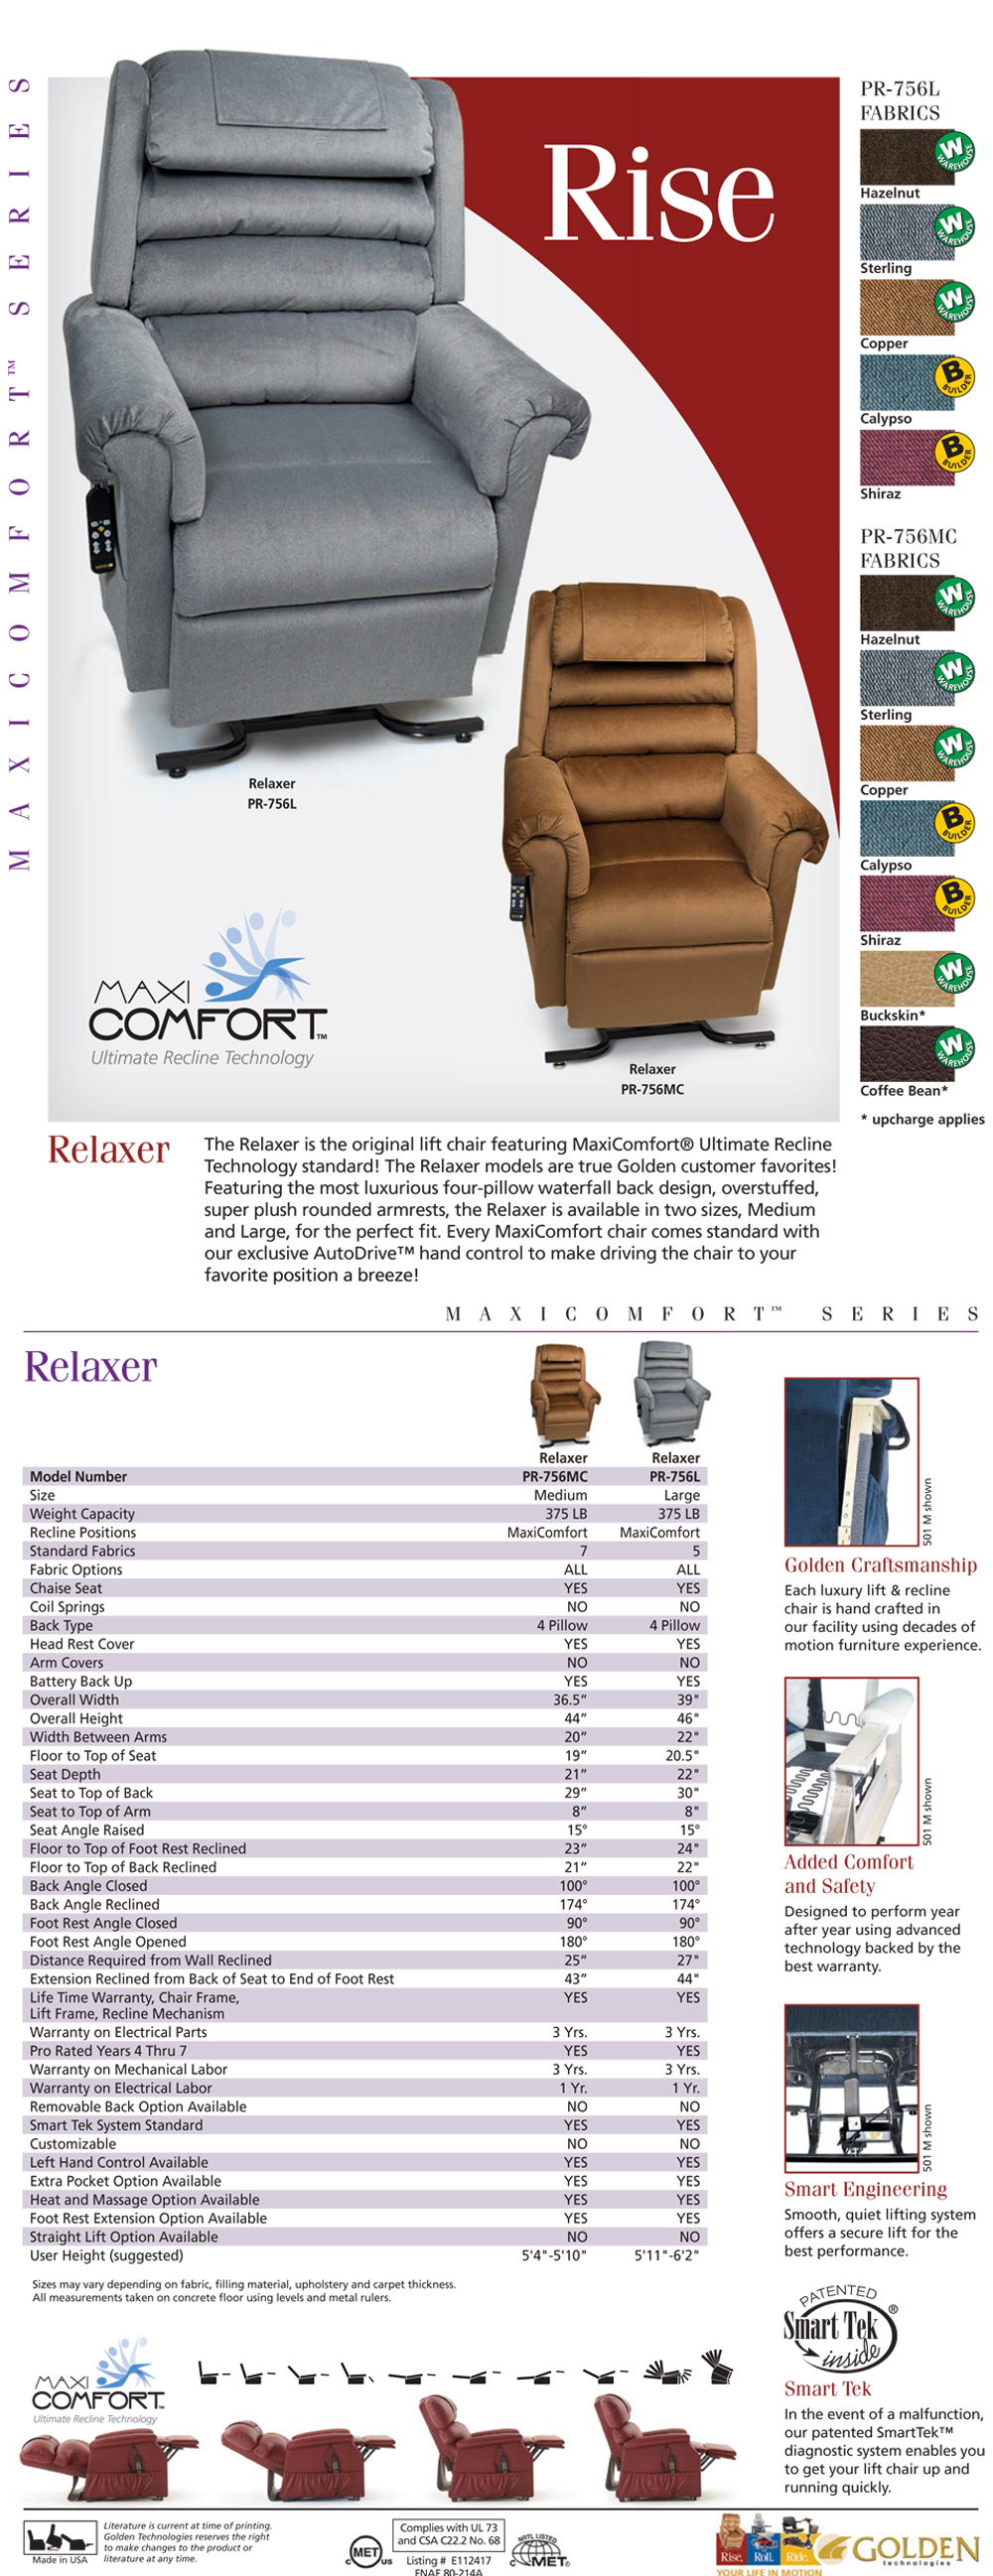 Golden-PR756-Relaxer-liftchair-recliner-sale